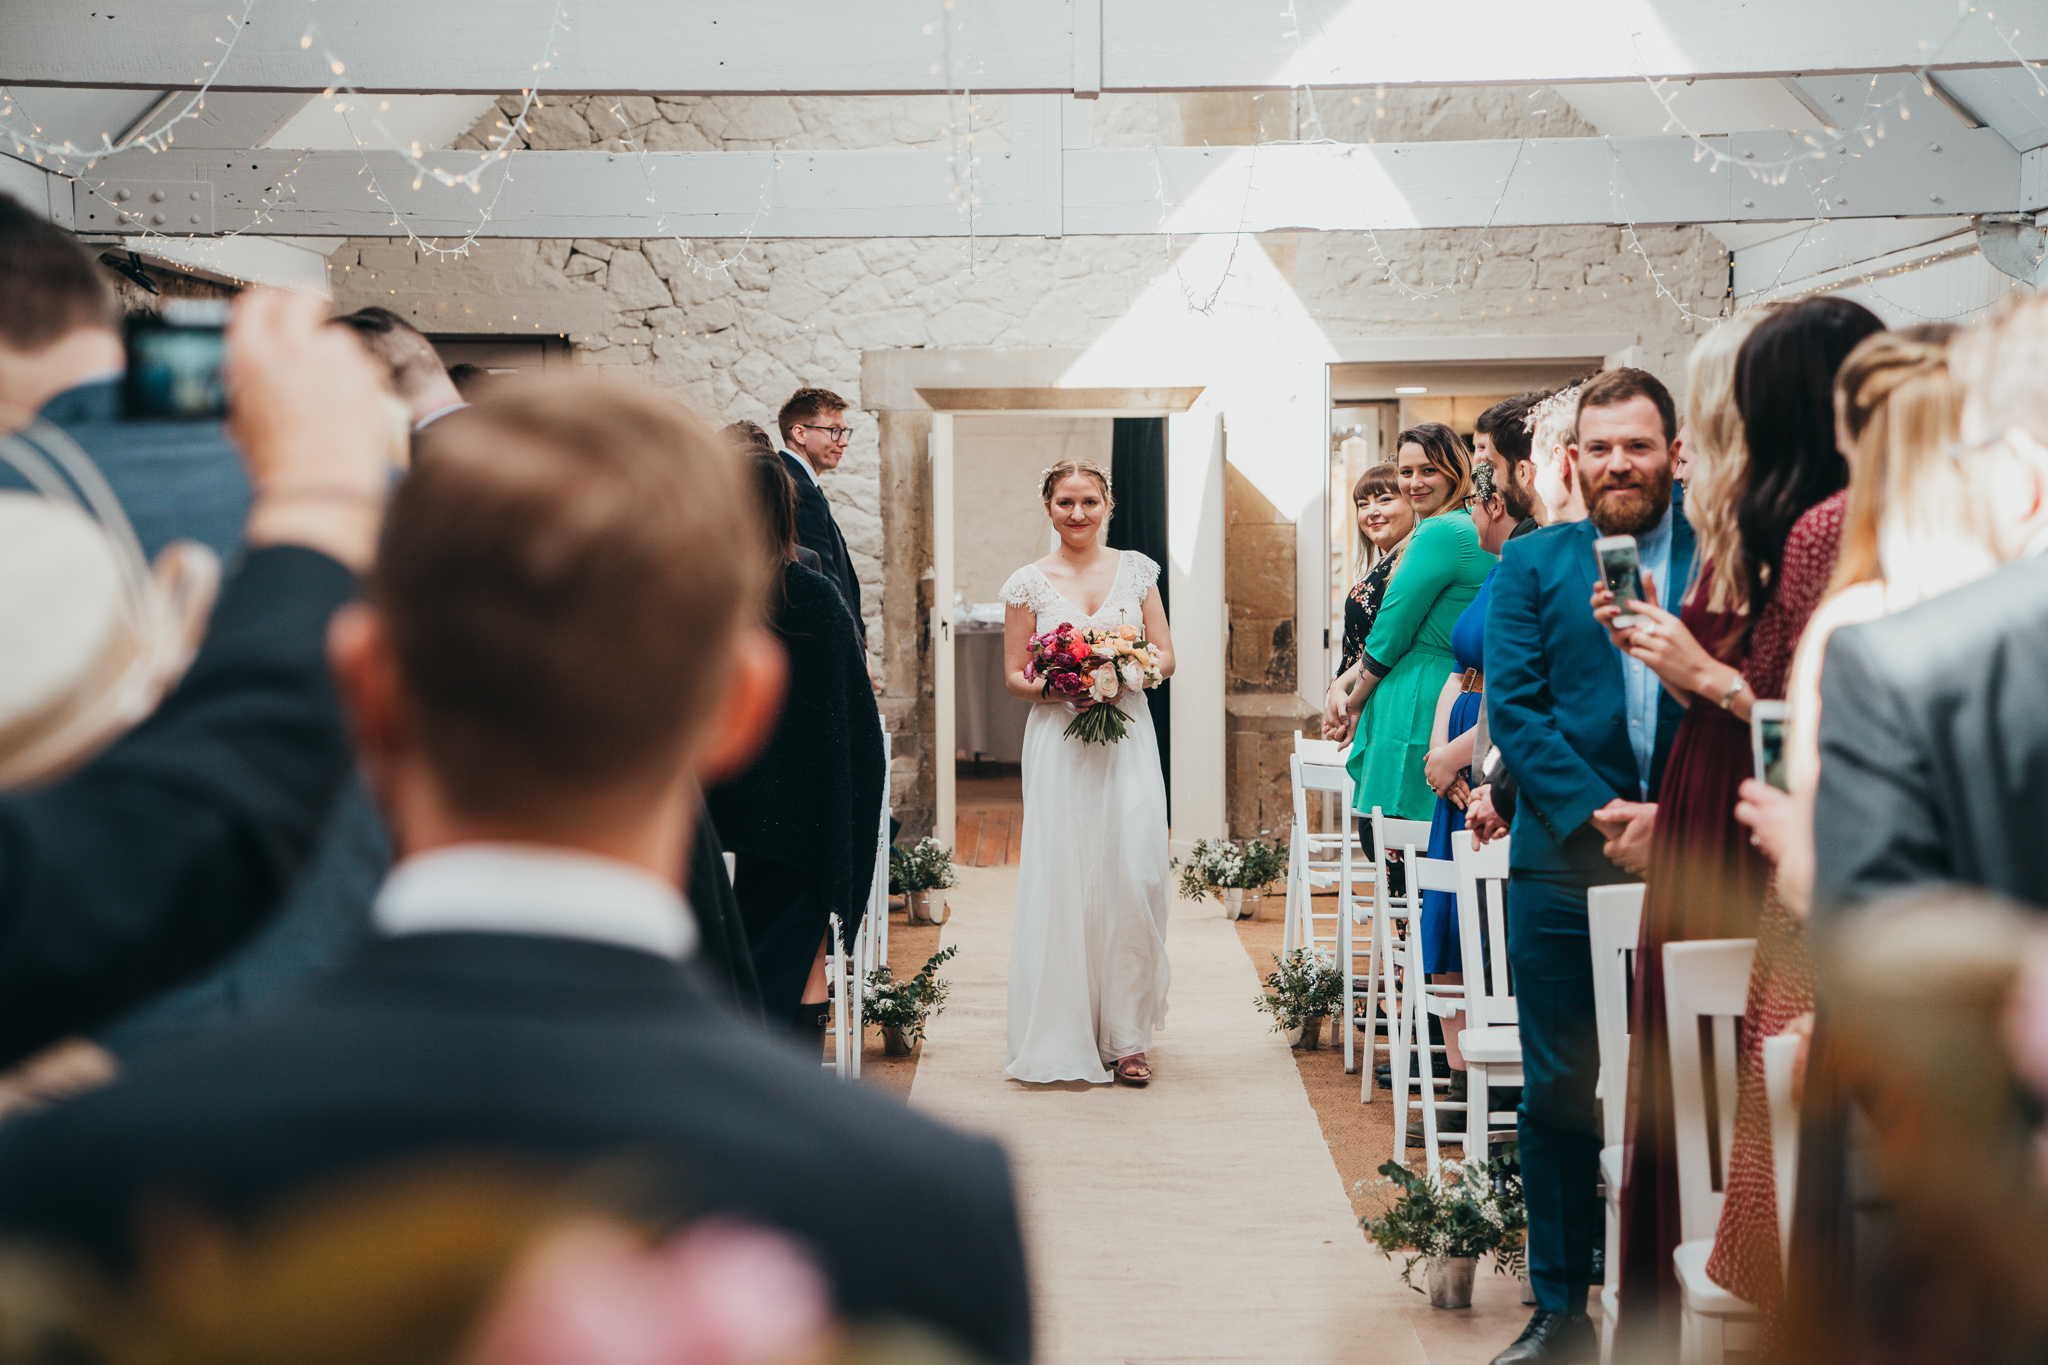 Bride with Flowers Walks down Aisle